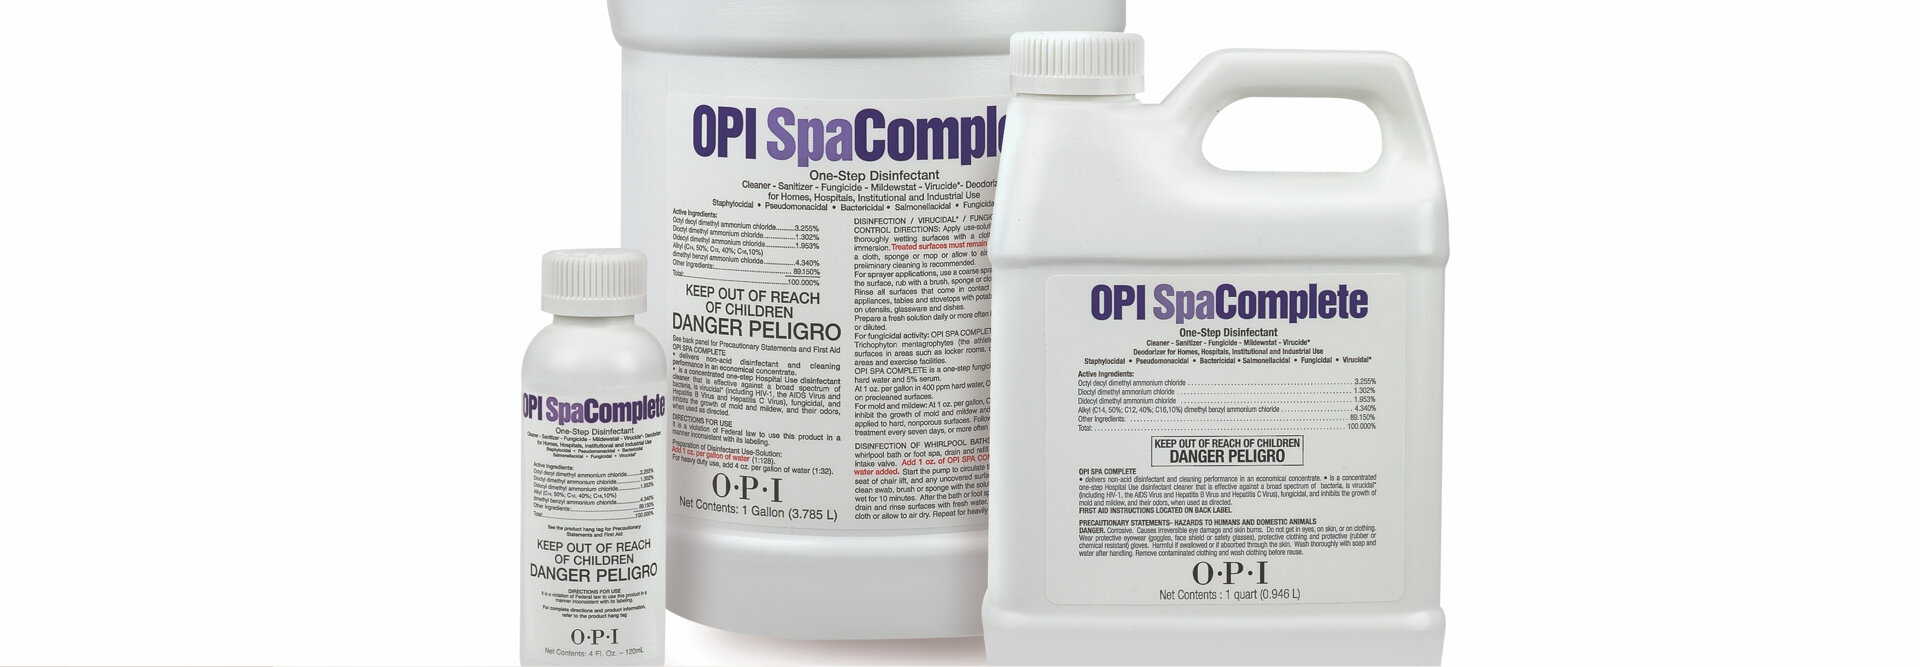 Professional Nail Salon Cleaning Products